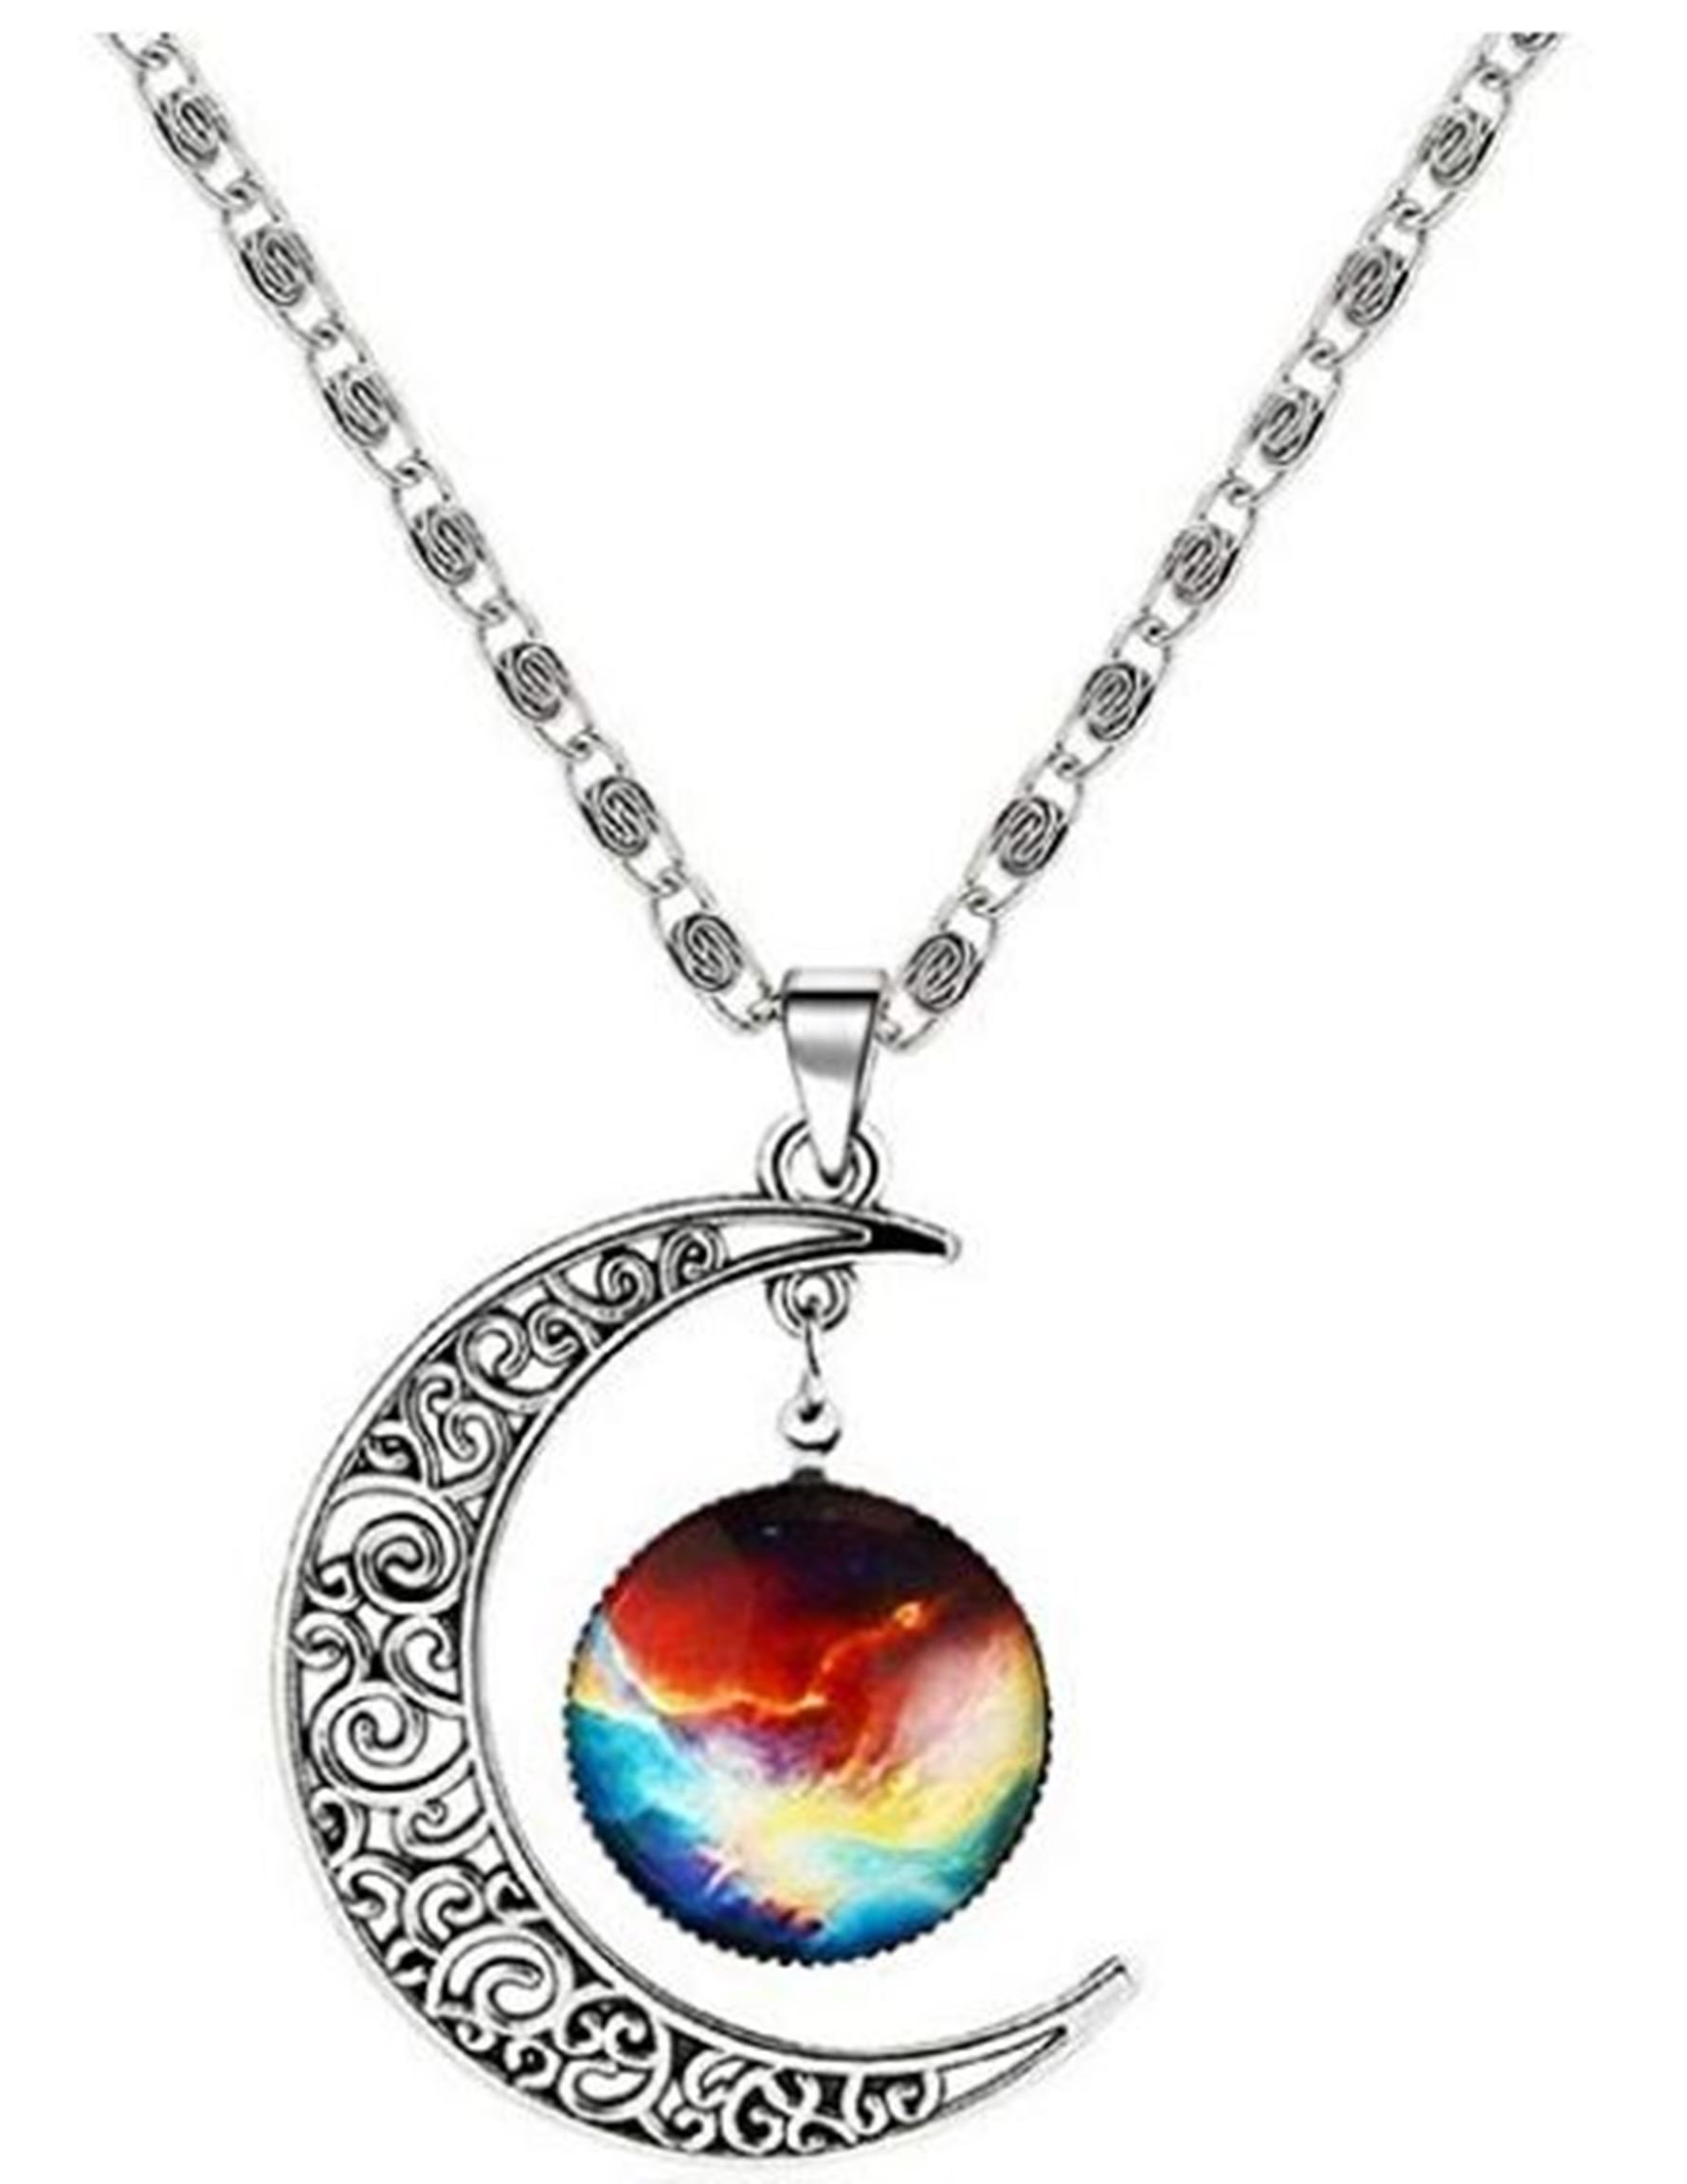 Adorit Mystical Galaxy & Crescent Moon Cosmic Colorful Pendant Necklace, Blue Glass, 17.5'' Chain, Great Gift for Holidays, Birthdays, Special Days